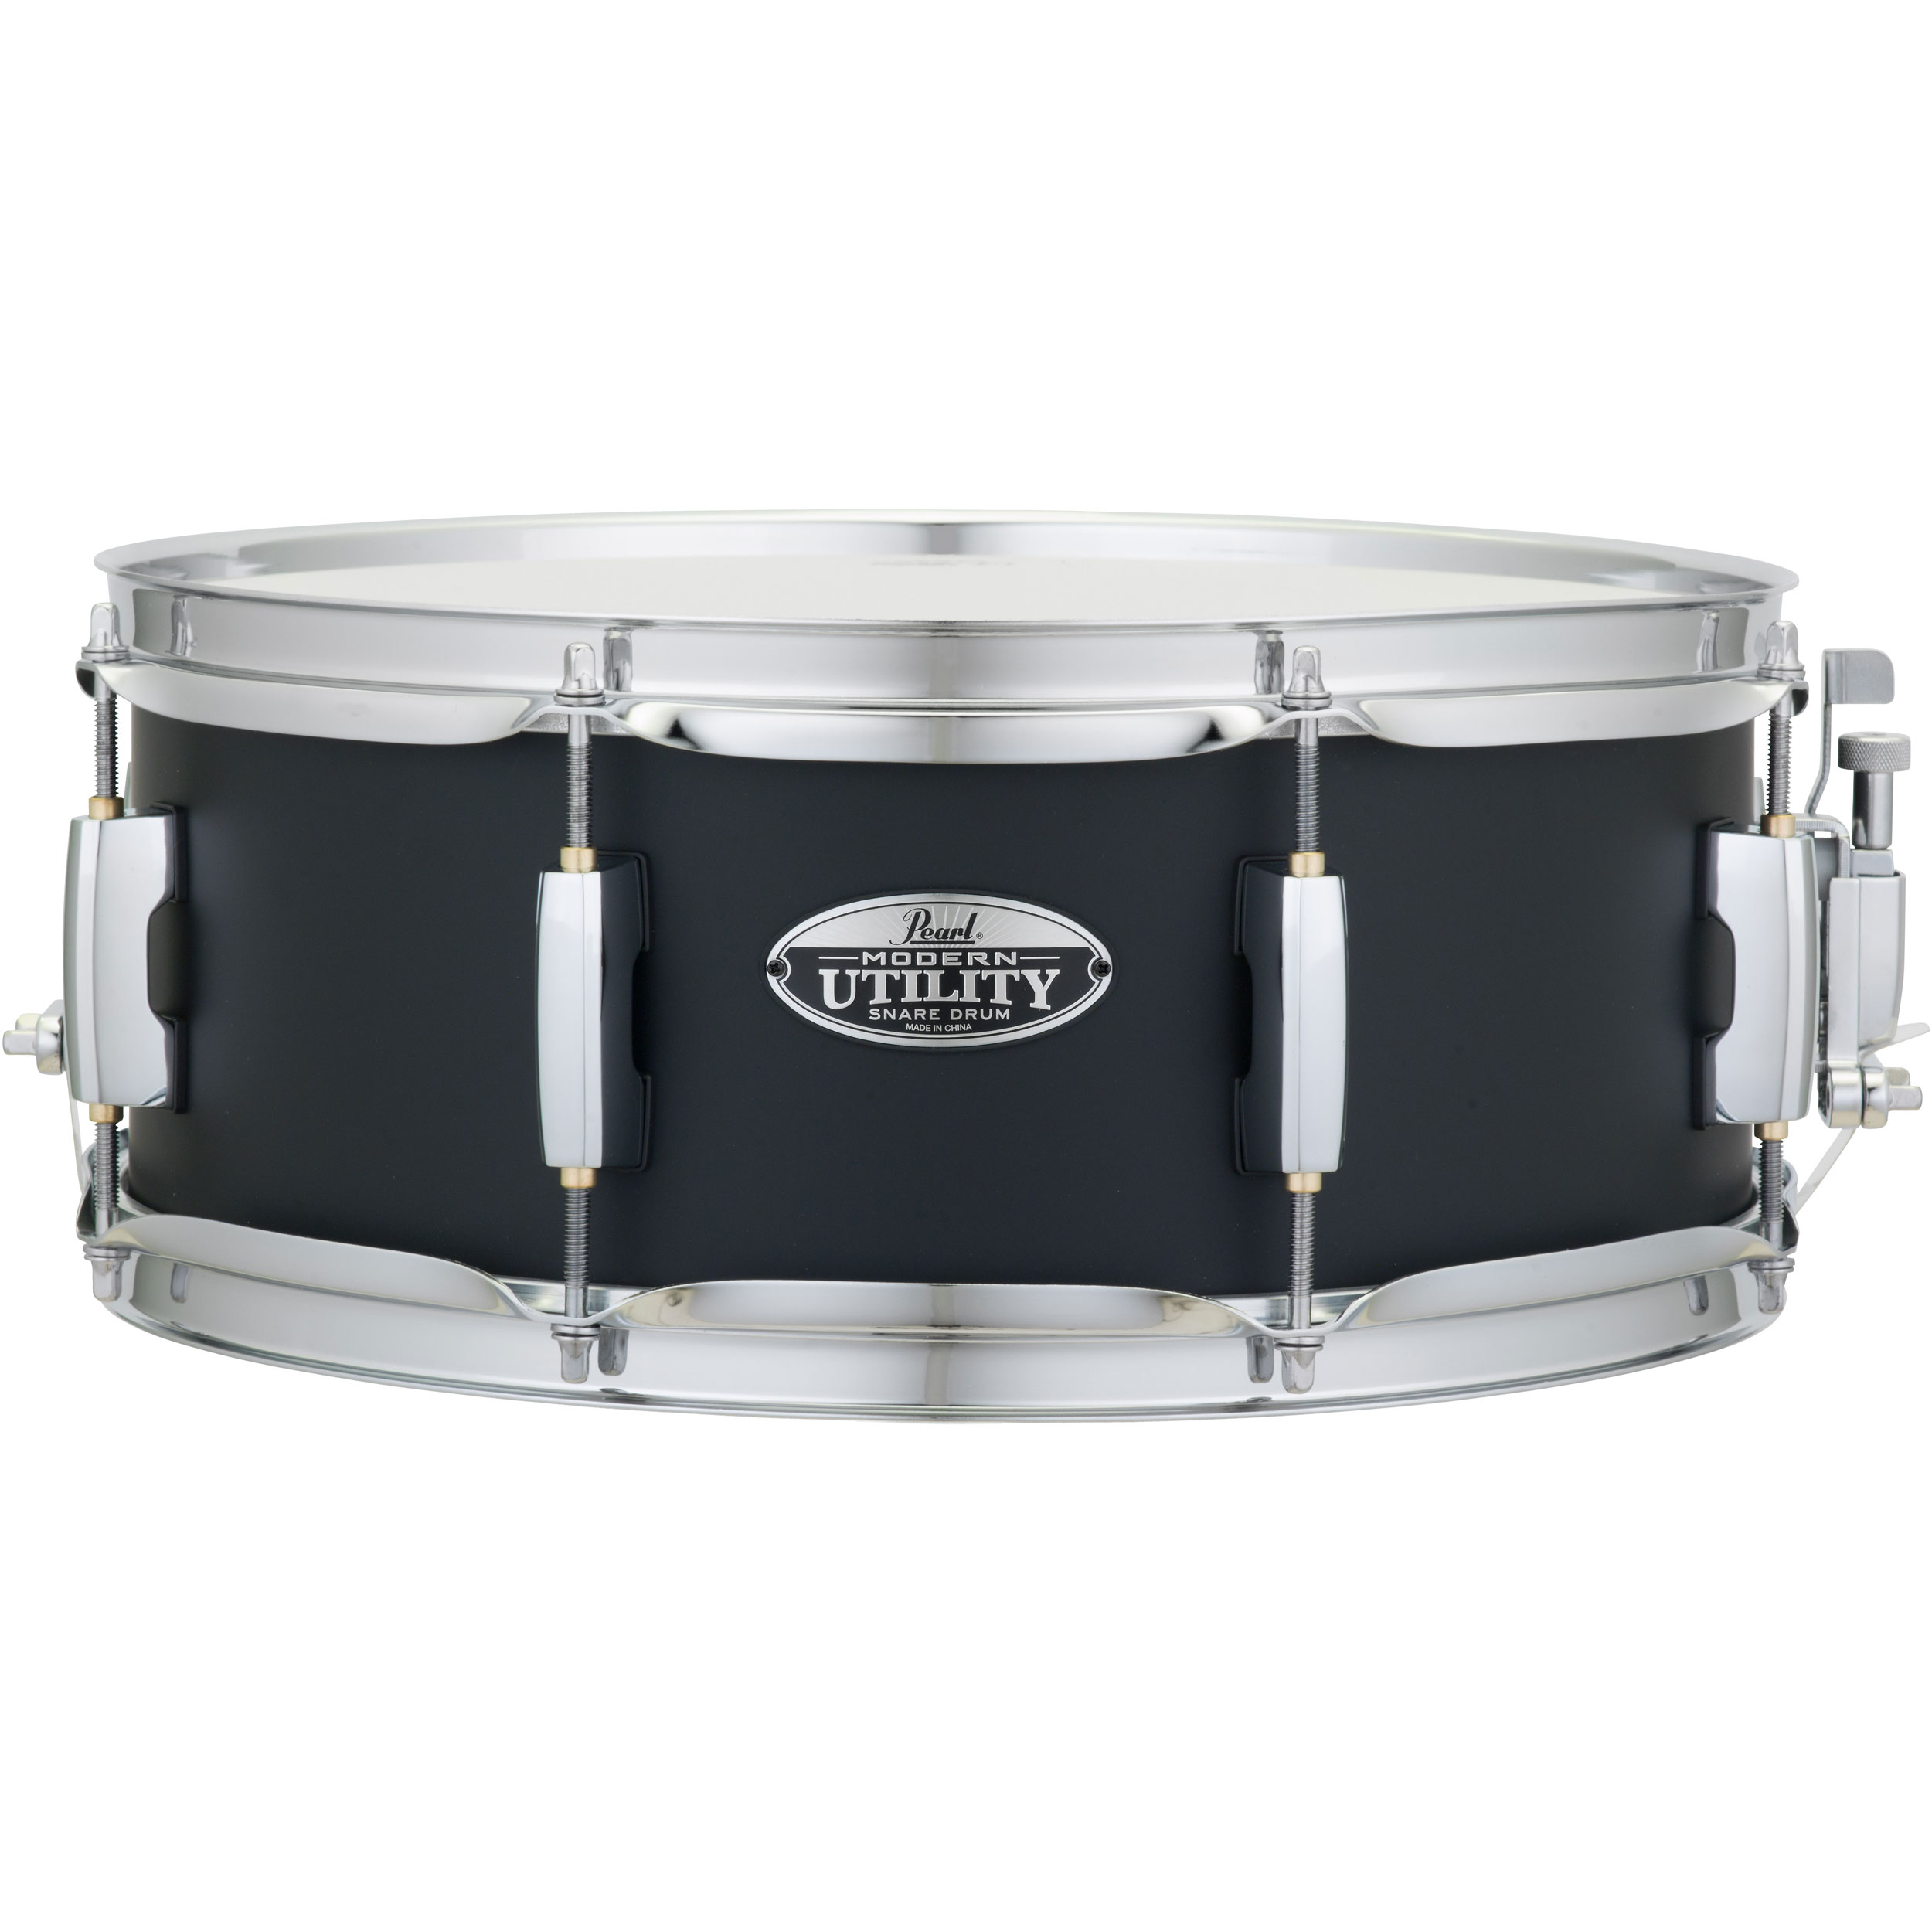 "Pearl 14"" x 5.5"" Modern Utility Maple Snare Drum"